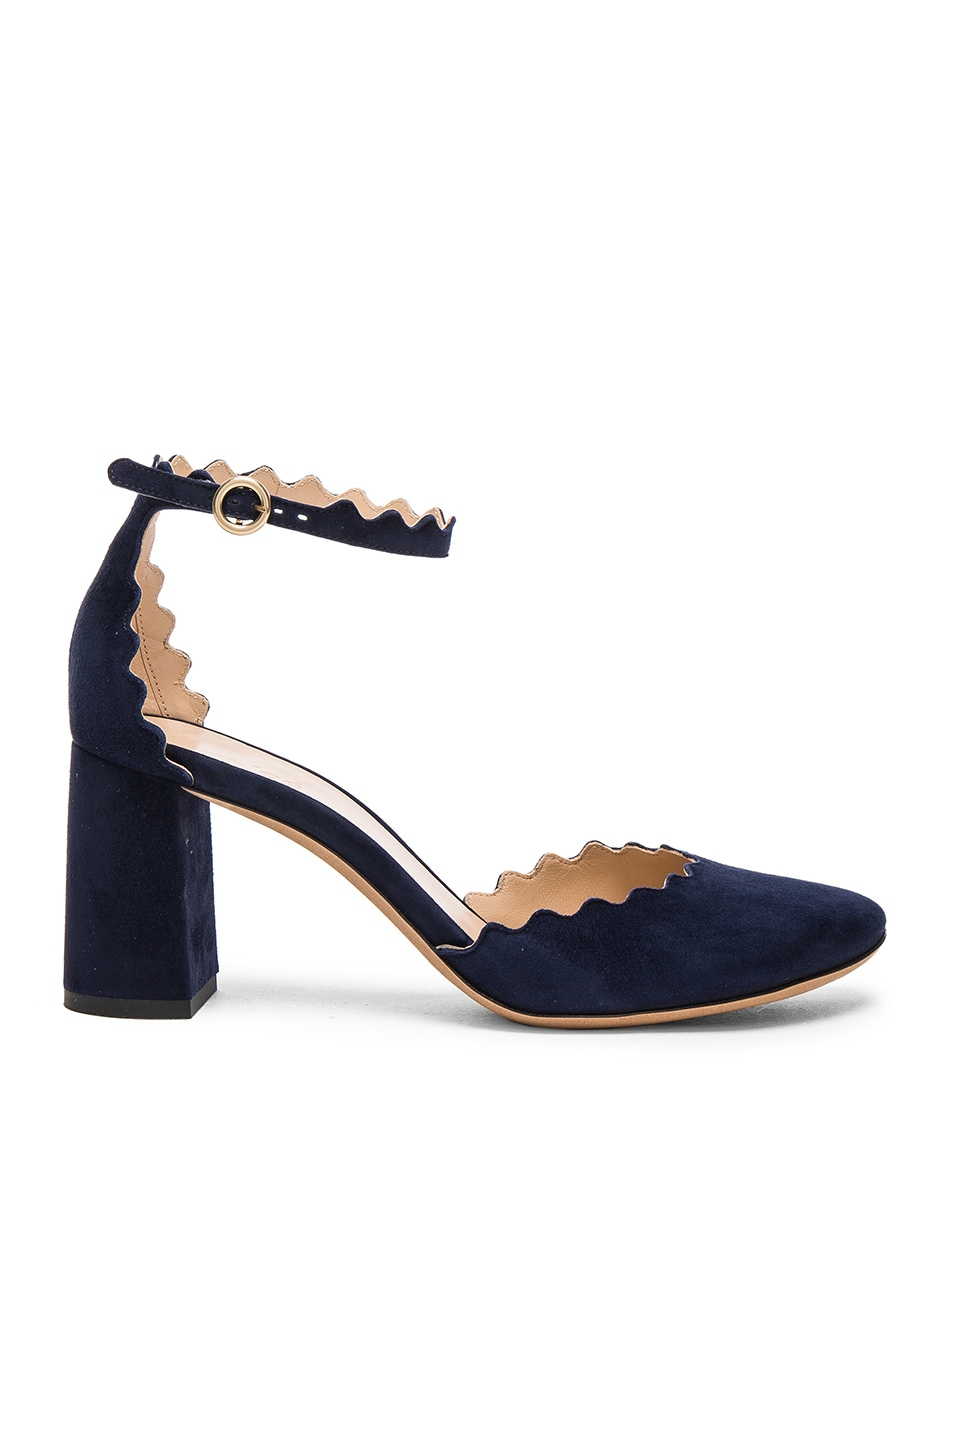 Image 1 of Chloe Suede Lauren Ballerina Pumps in Blue Lagoon